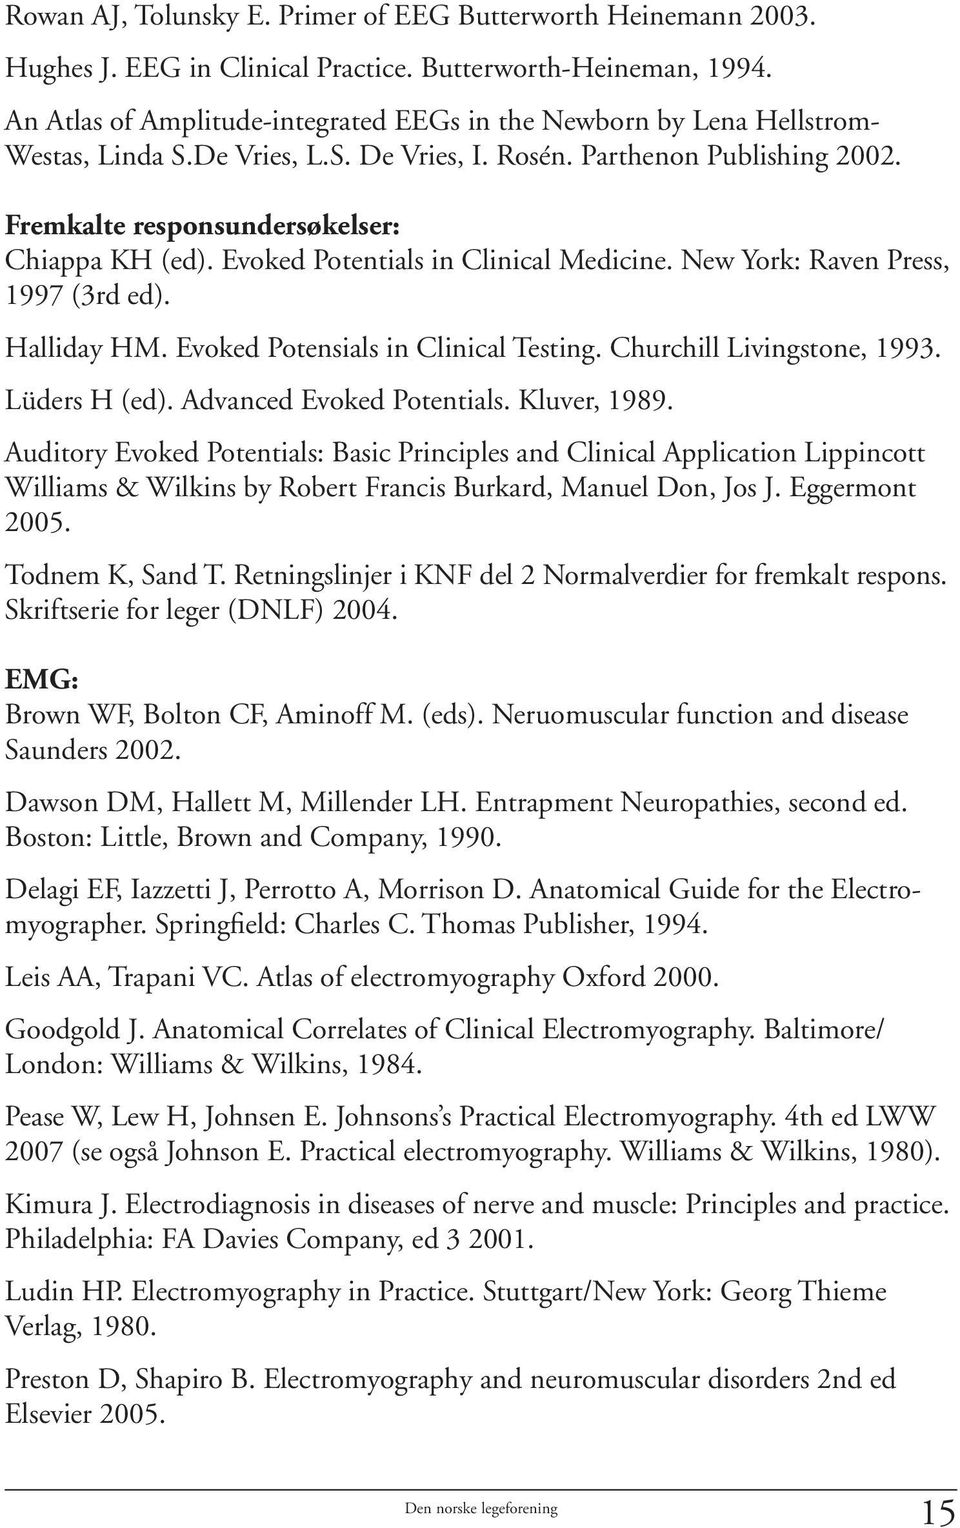 Evoked Potentials in Clinical Medicine. New York: Raven Press, 1997 (3rd ed). Halliday HM. Evoked Potensials in Clinical Testing. Churchill Livingstone, 1993. Lüders H (ed).